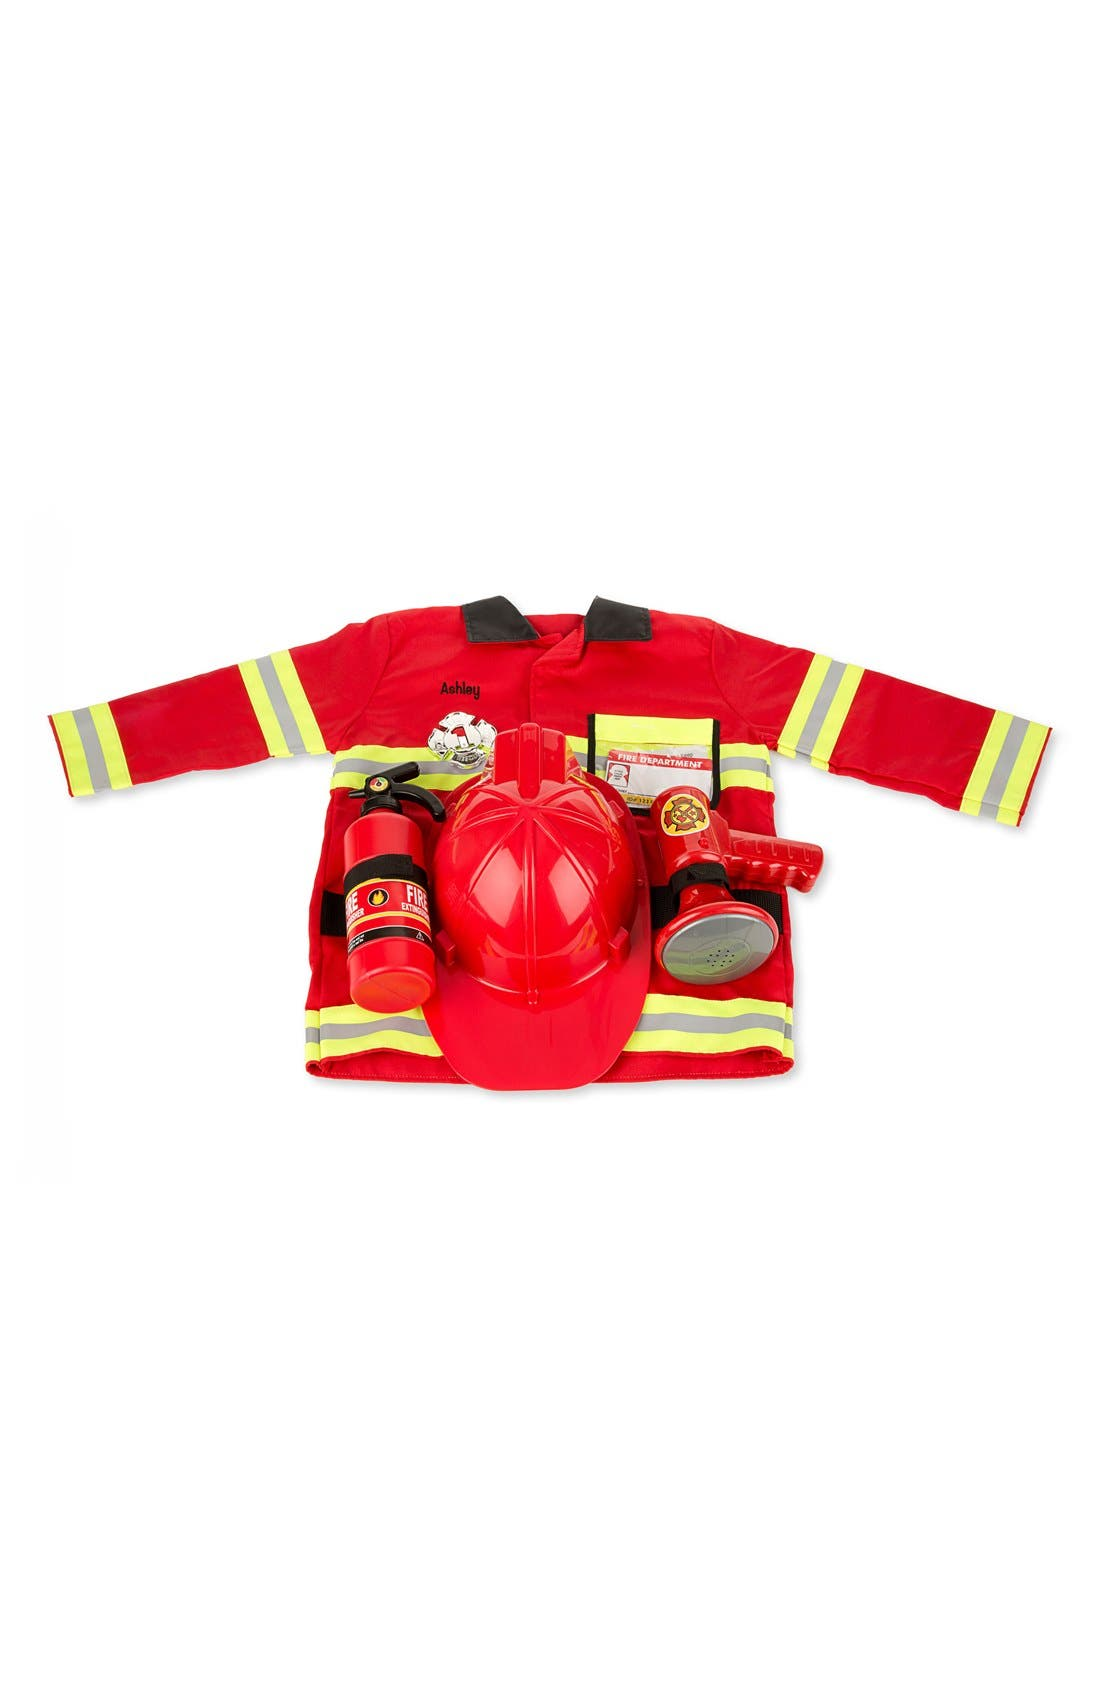 Melissa & Doug Personalized Fire Chief Costume Set (Toddler)